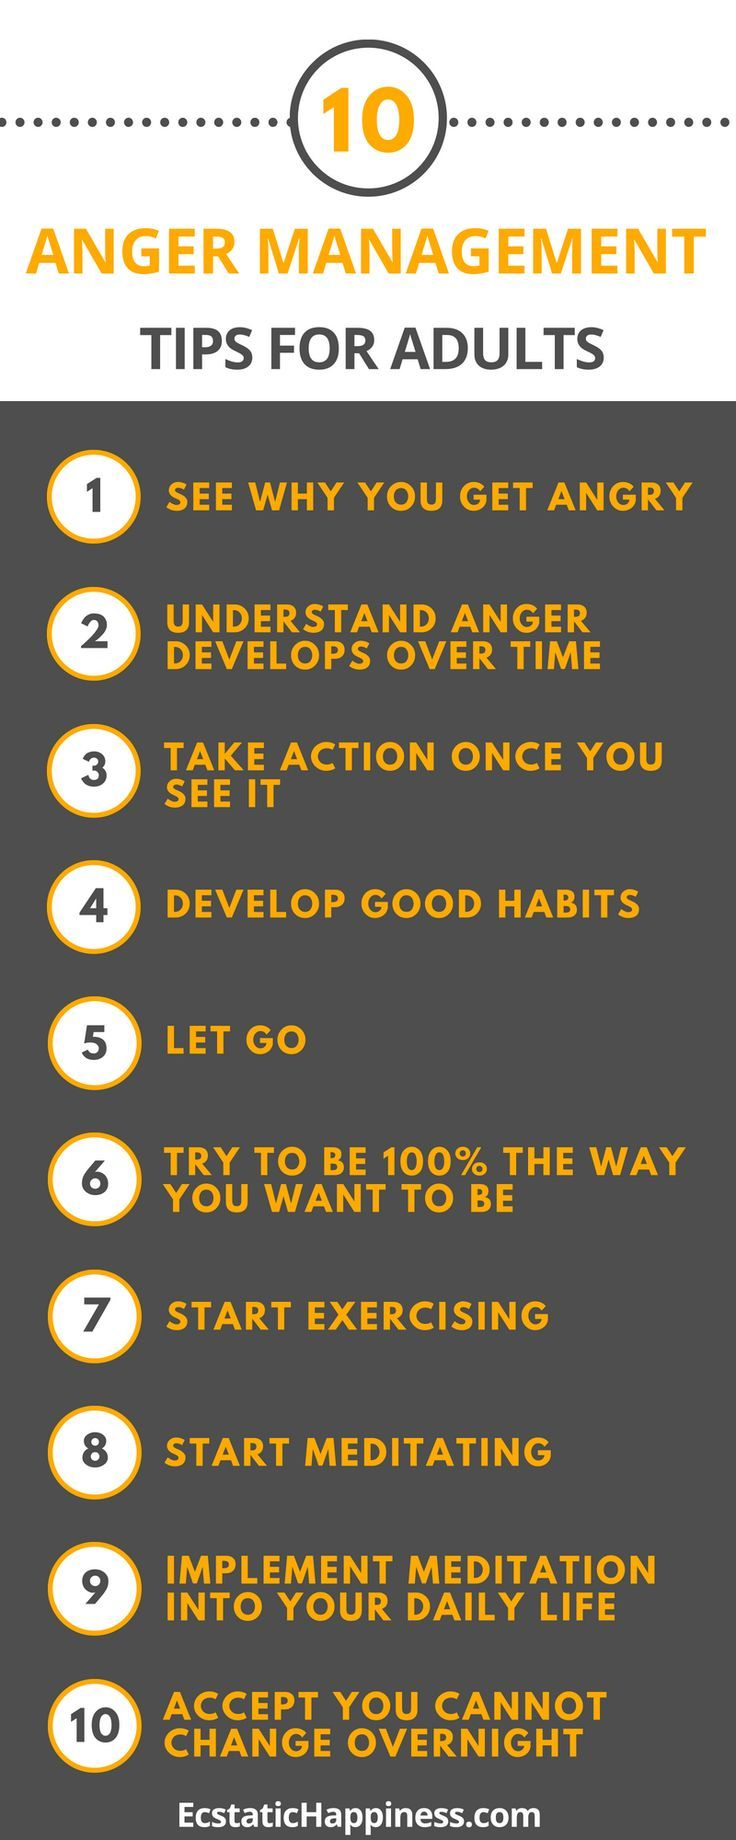 Psychology-Infographic-Read-these-10-Anger-management-tips-for-adults-to-improve-your-relationships-and Psychology Infographic : Read these 10 Anger management tips for adults to improve your relationships and...